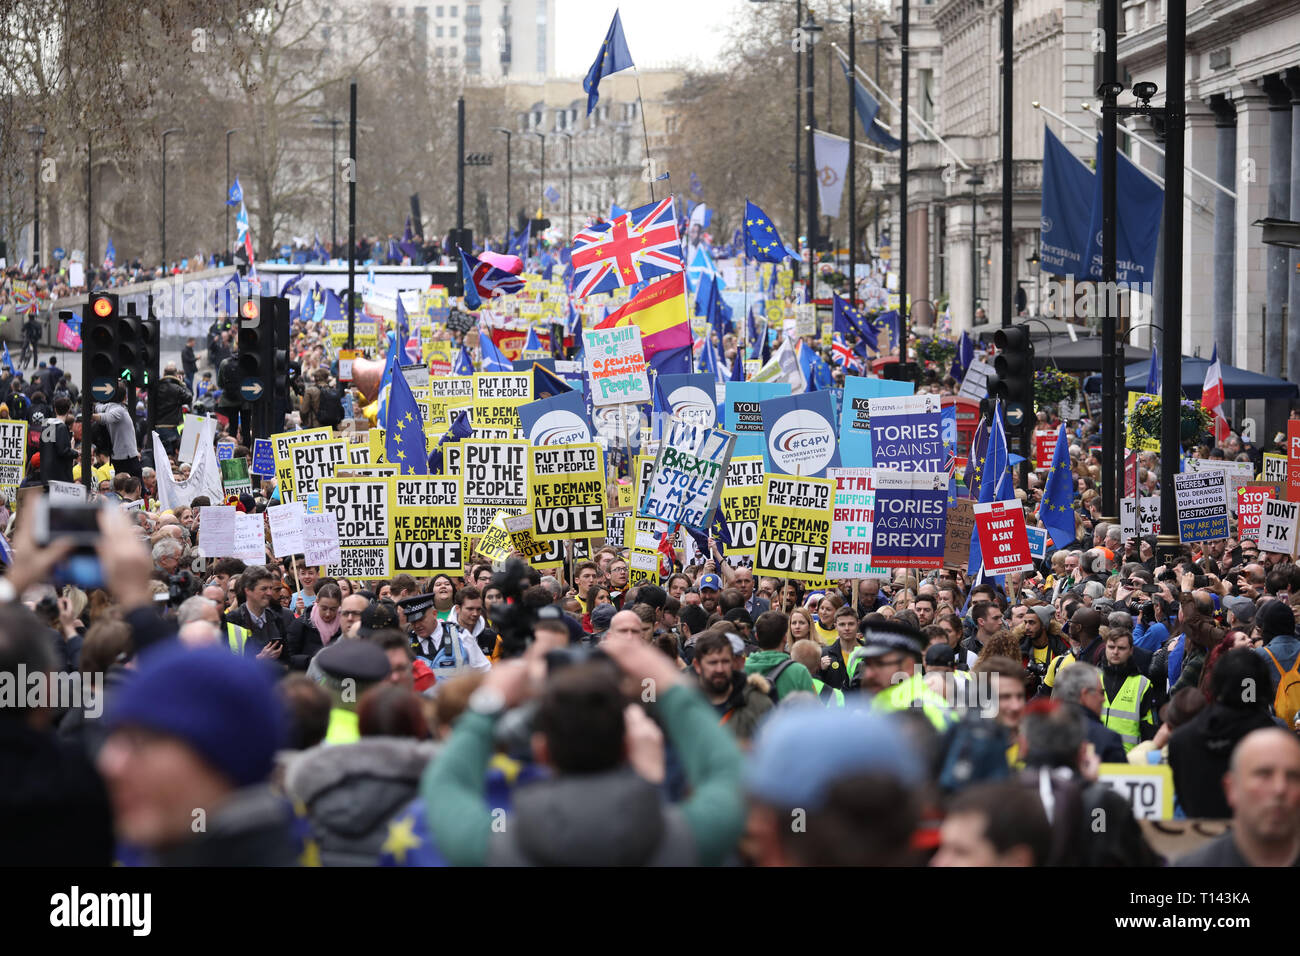 London, UK. 23rd Mar 2019.Hundreds of thousands of people take part in a People's March protest to try and get a People's Vote on Brexit. Britain was due to leave the EU on March 29, 2019, but this is now in doubt. The march started in Park Lane and finished in Westminster, outside the Houses of Parliament, London, UK on March 23, 2019. Credit: Paul Marriott/Alamy Live News Stock Photo